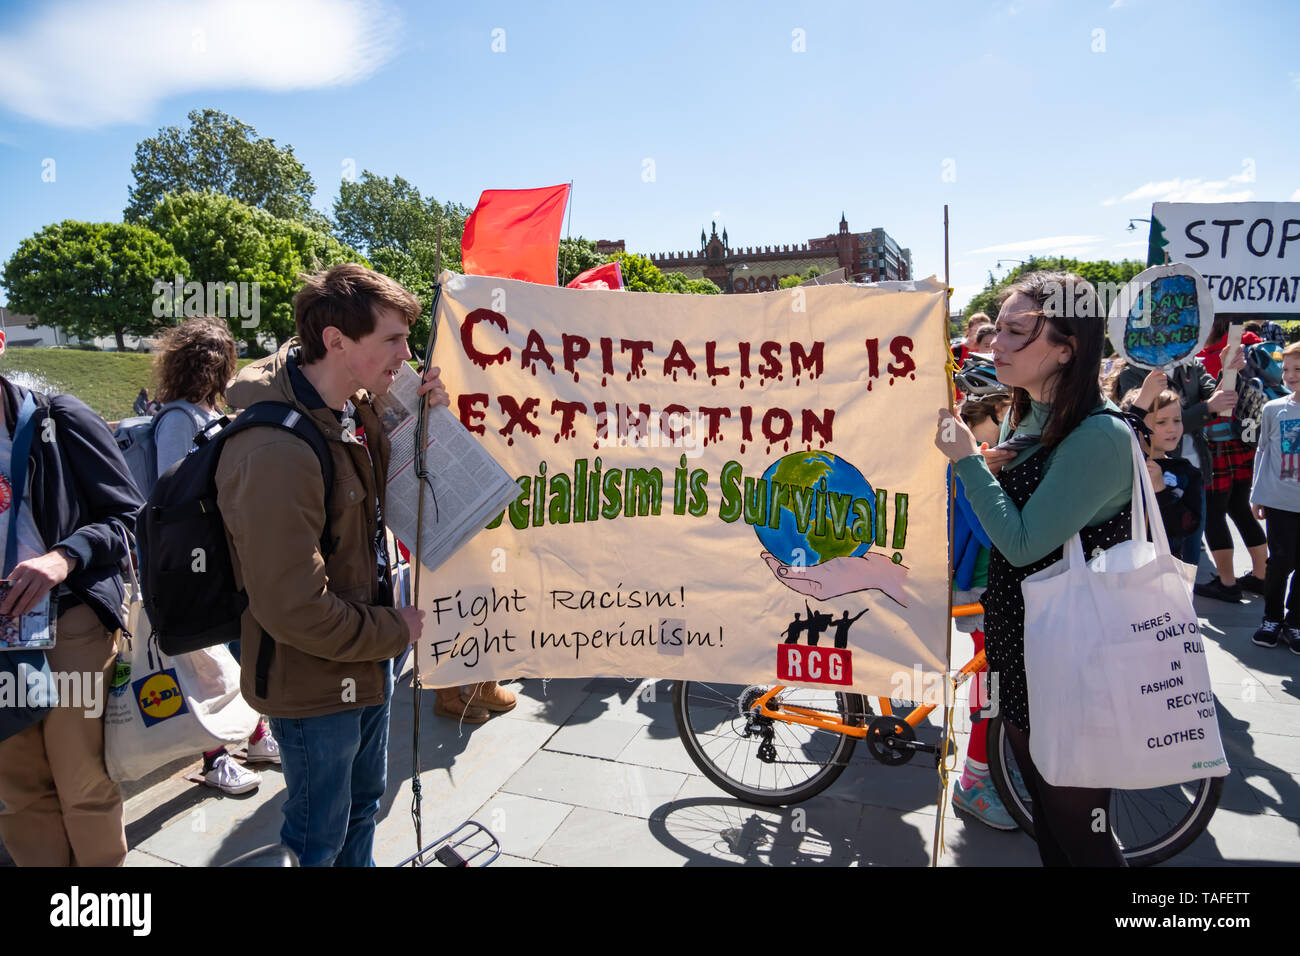 Glasgow, Scotland, UK. 24th May, 2019. A banner saying Capitalism Is Extinction Socialism Is Survival Fight Racism Fight Imperialism is carried during the Youth Strike 4 Climate student demonstration. Students across the UK are protesting against climate change and the lack of action by the Government.  Credit: Skully/Alamy Live News - Stock Image